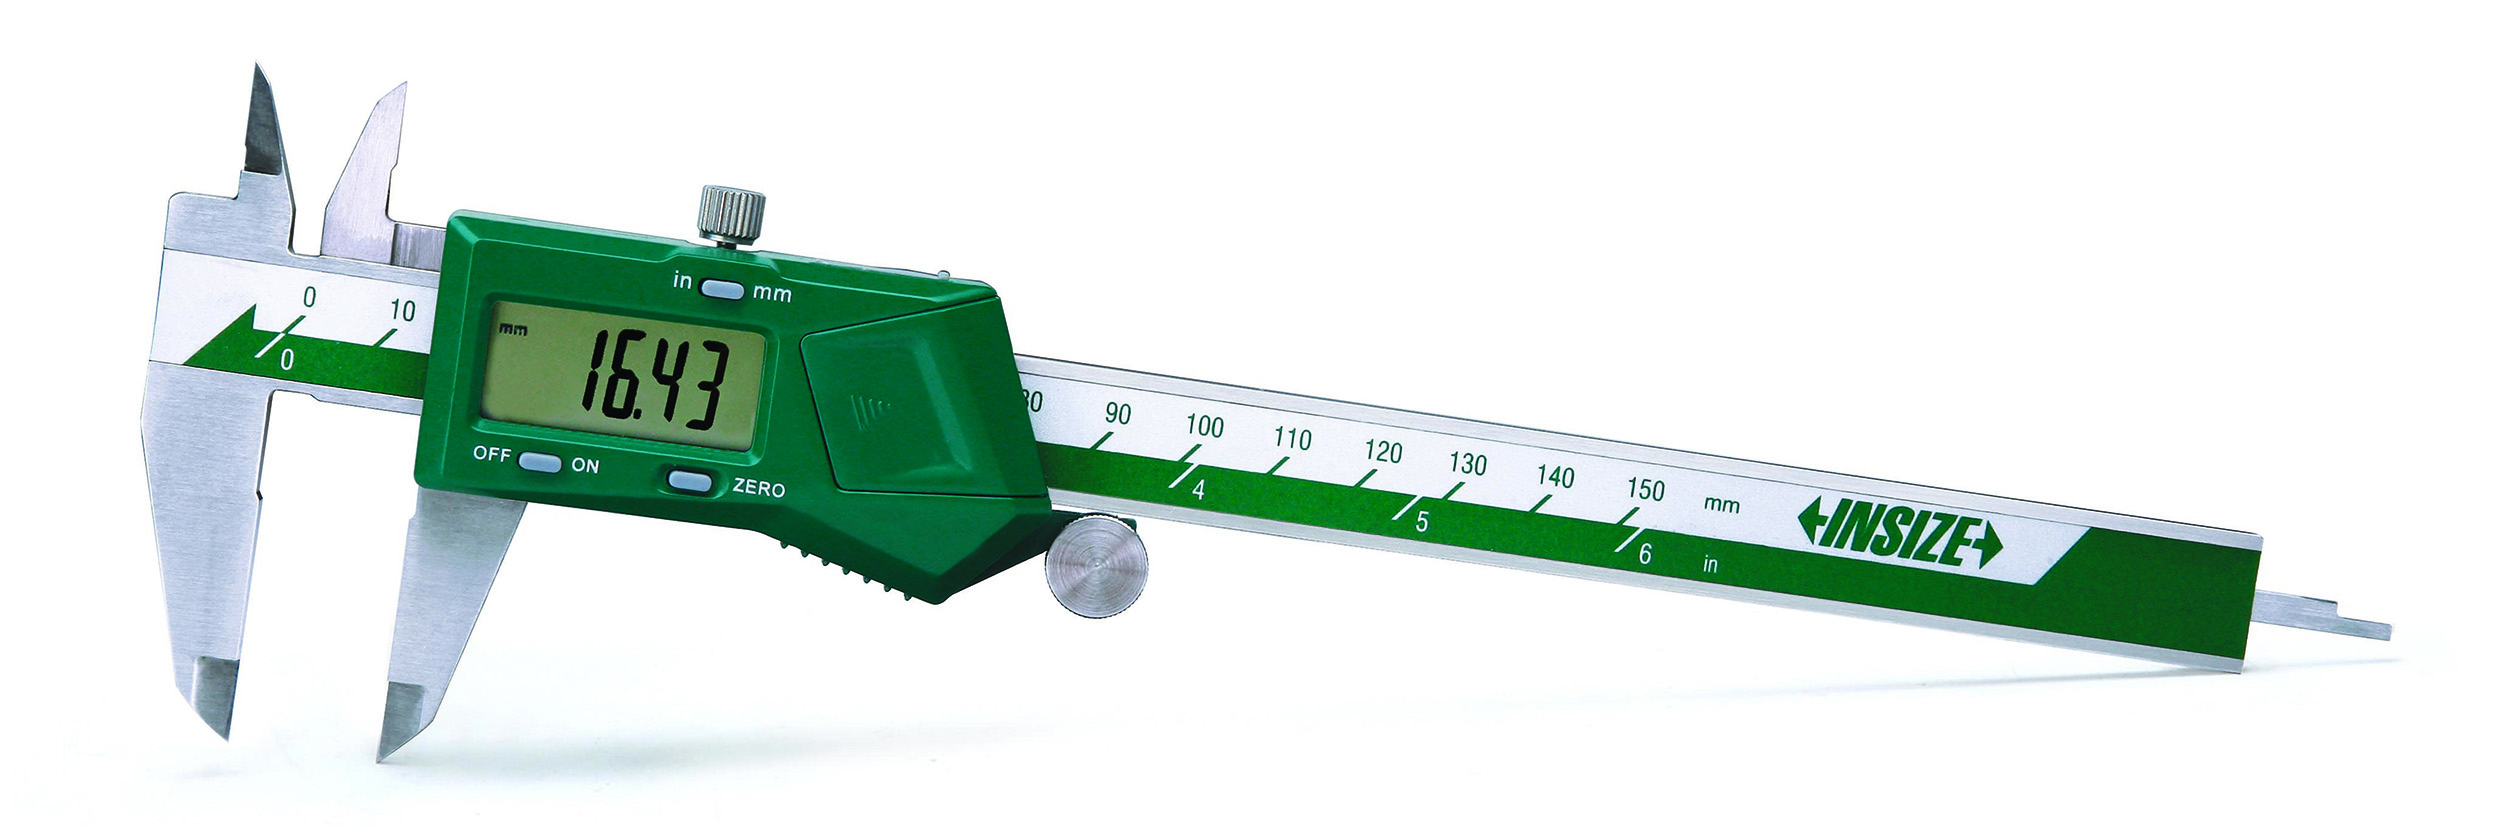 Insize Digital Vernier Caliper 150mm